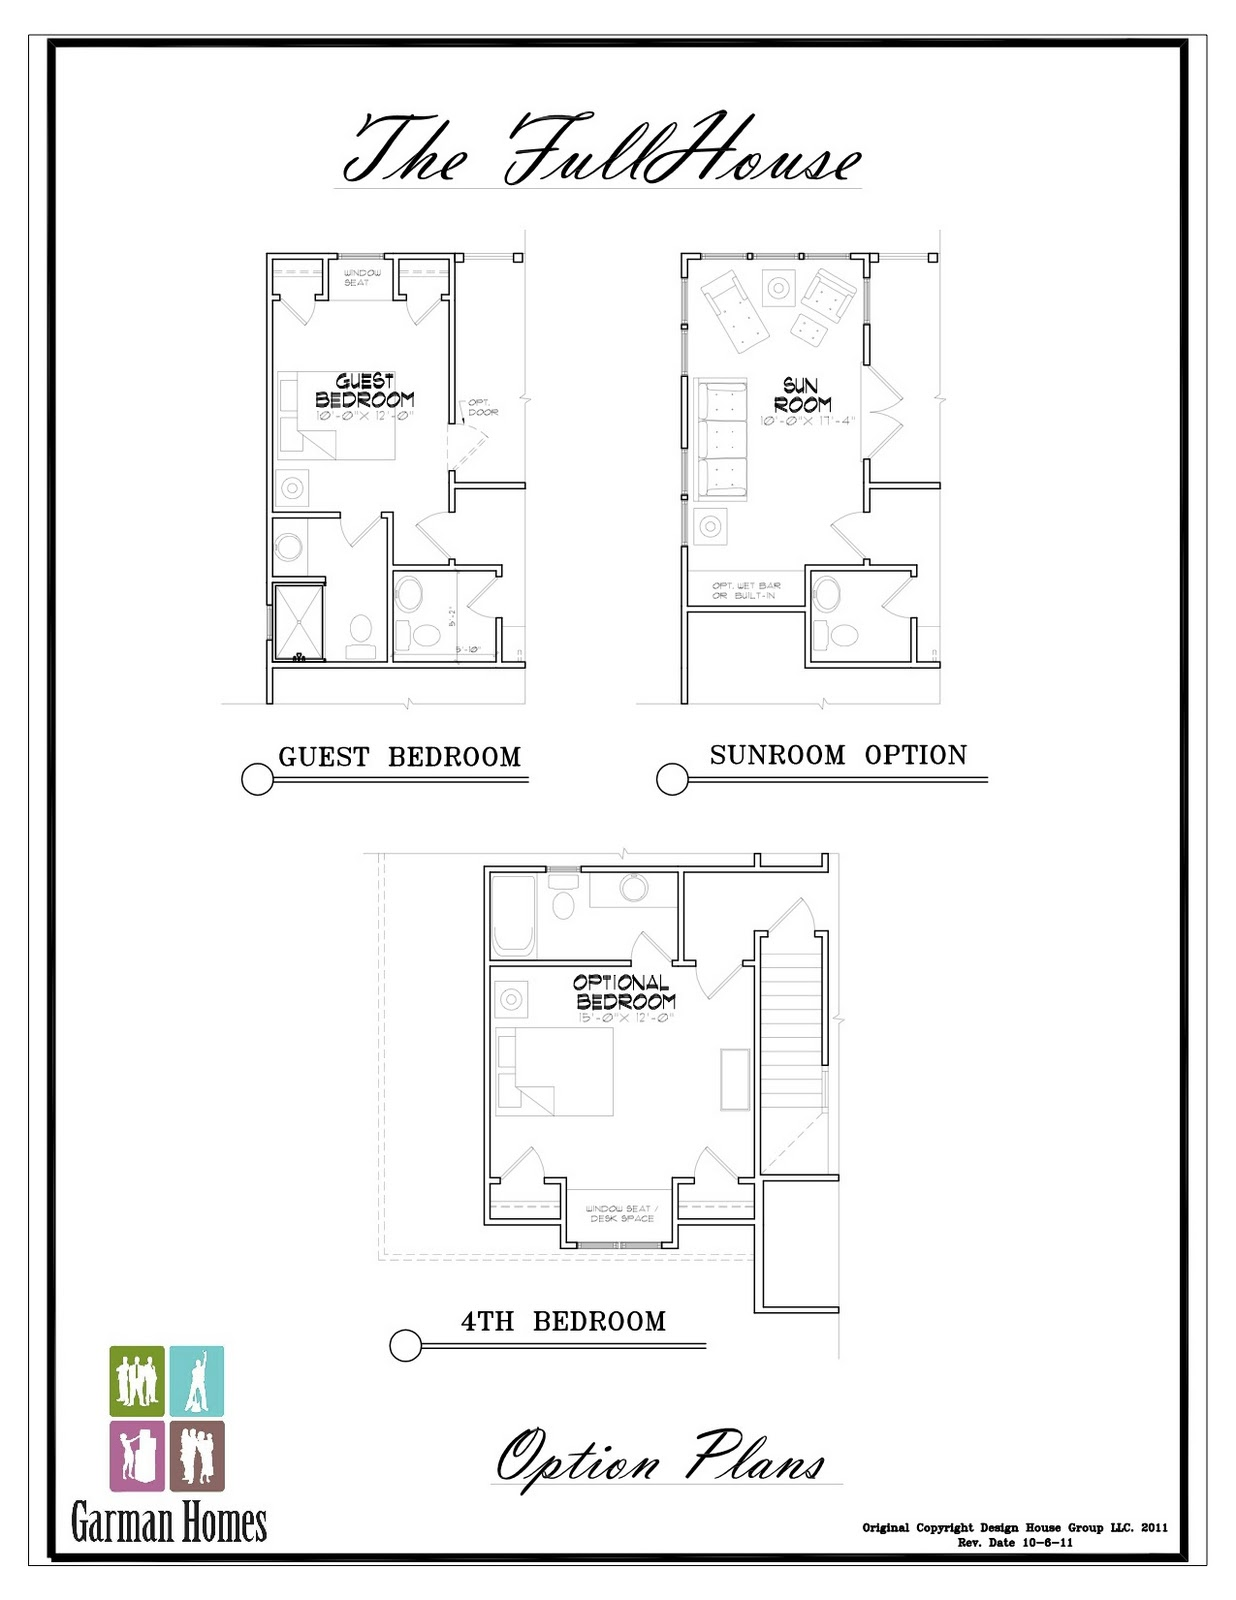 Garman Homes Unplugged The Full House And Why We Call It